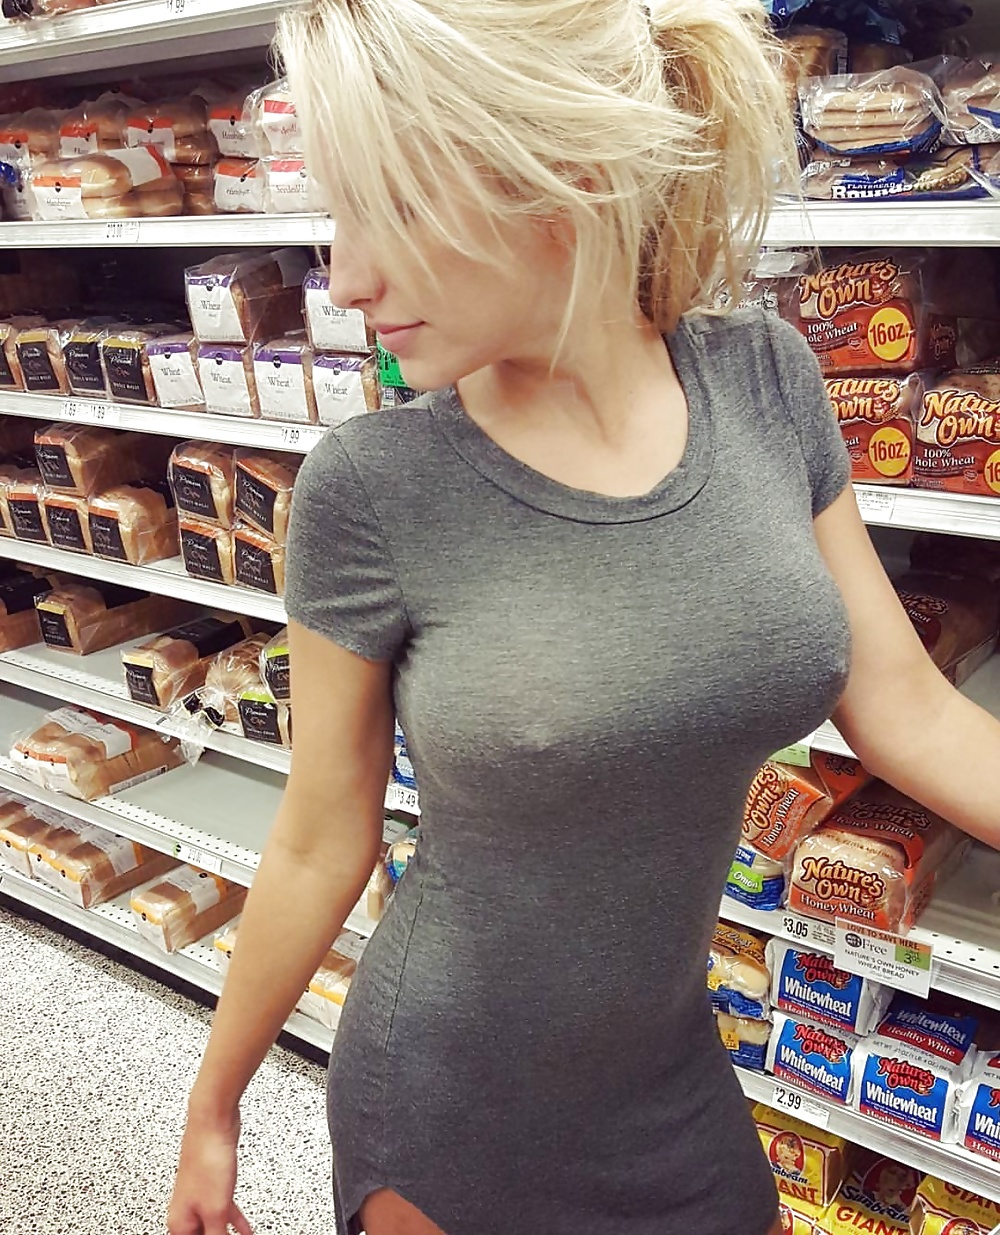 showing porn images for robin wright house cards porn #nipples #saggers #saggyboobs #saggytits #slutwife #tits #wife